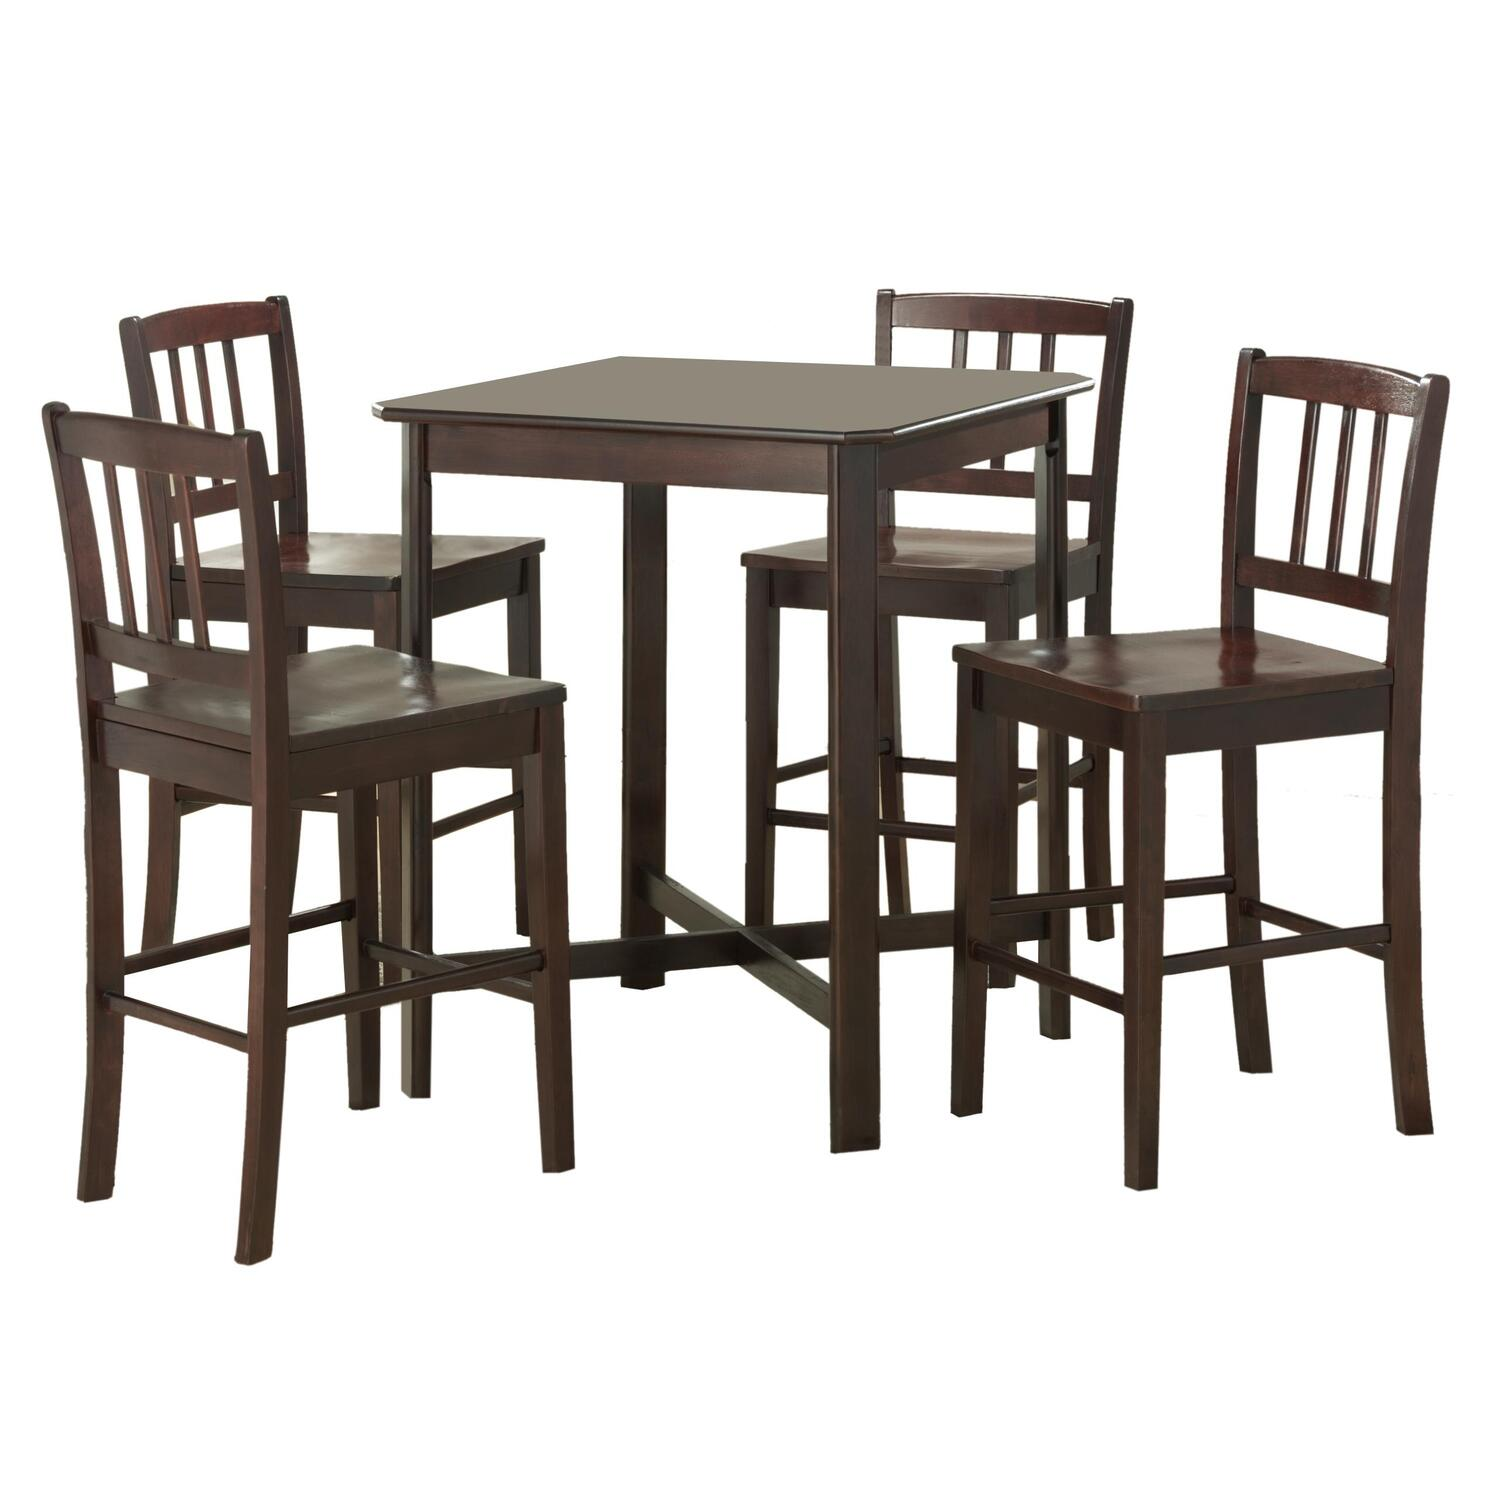 5 piece solid wood pub table set dark wood ojcommerce - High bar table and chairs ...